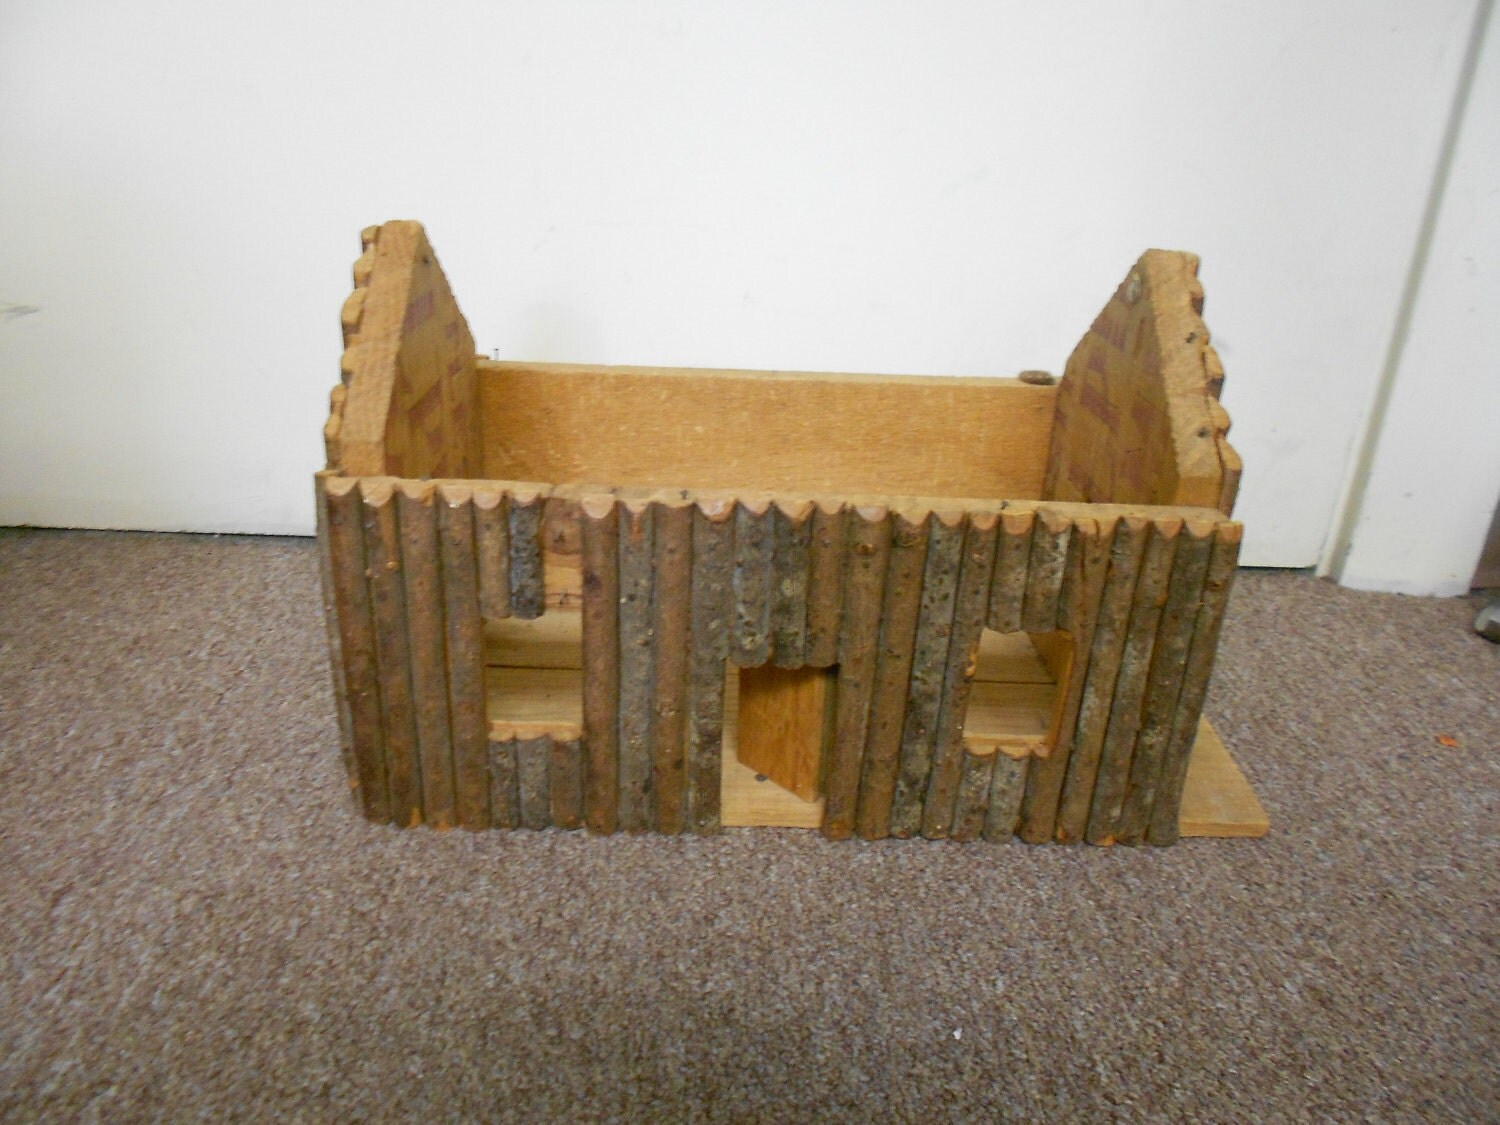 Vintage Dollhouse Log Cabin Homemade By 247overstock On Etsy